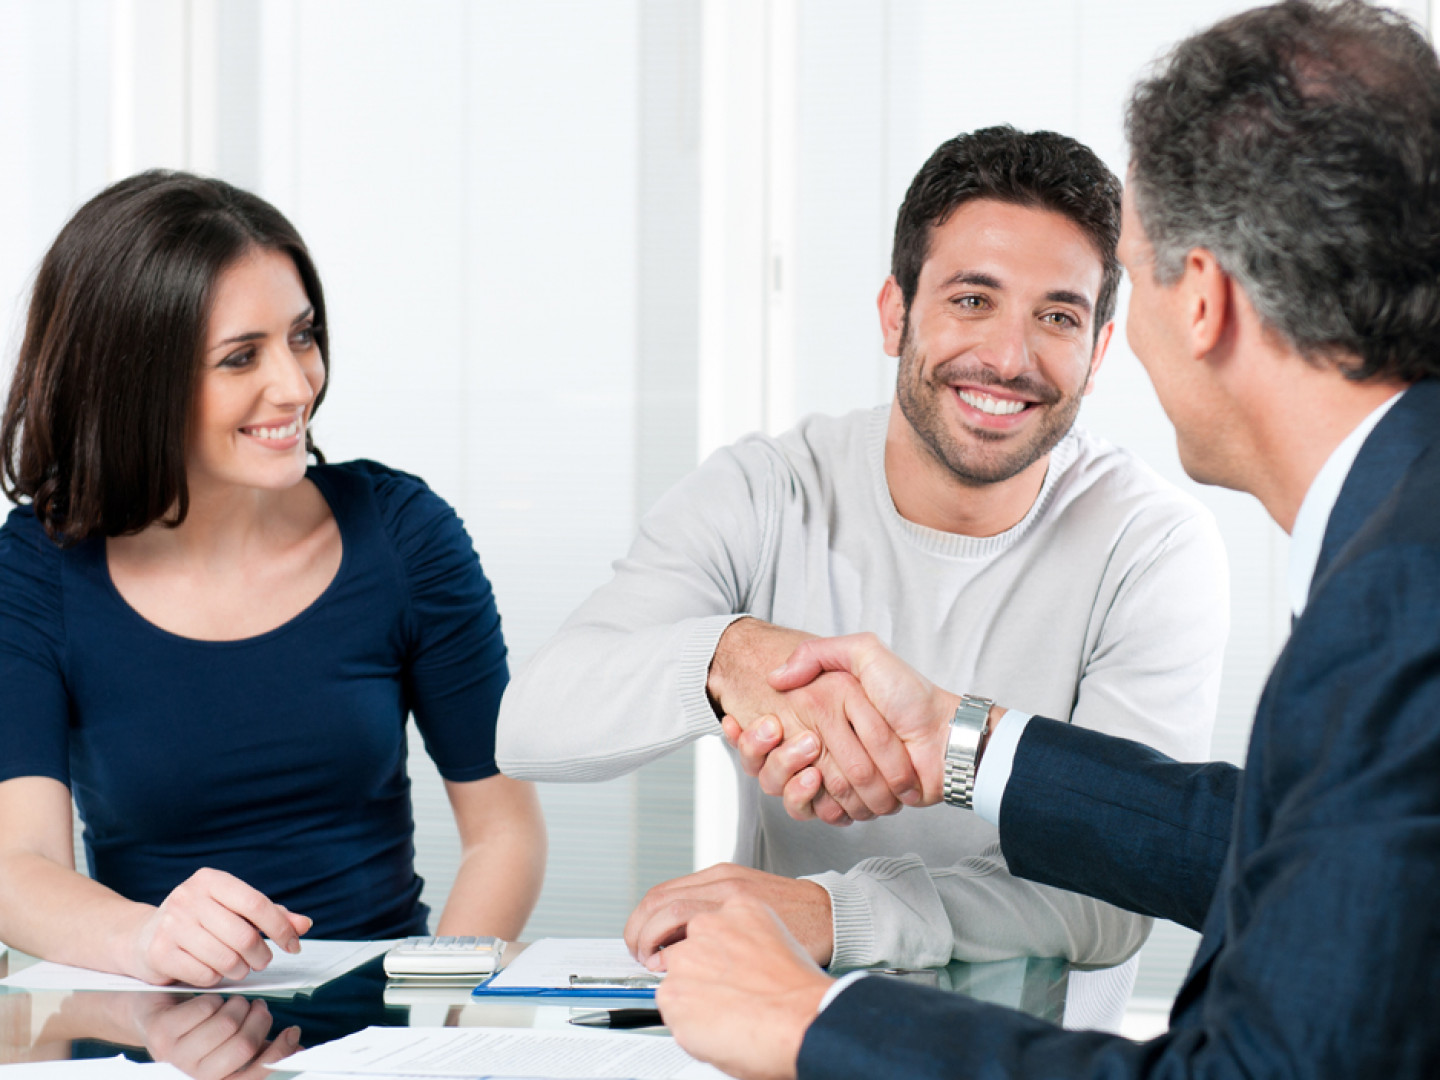 Mediation Attorney Services In Waco, Gatesville, and Killeen Area